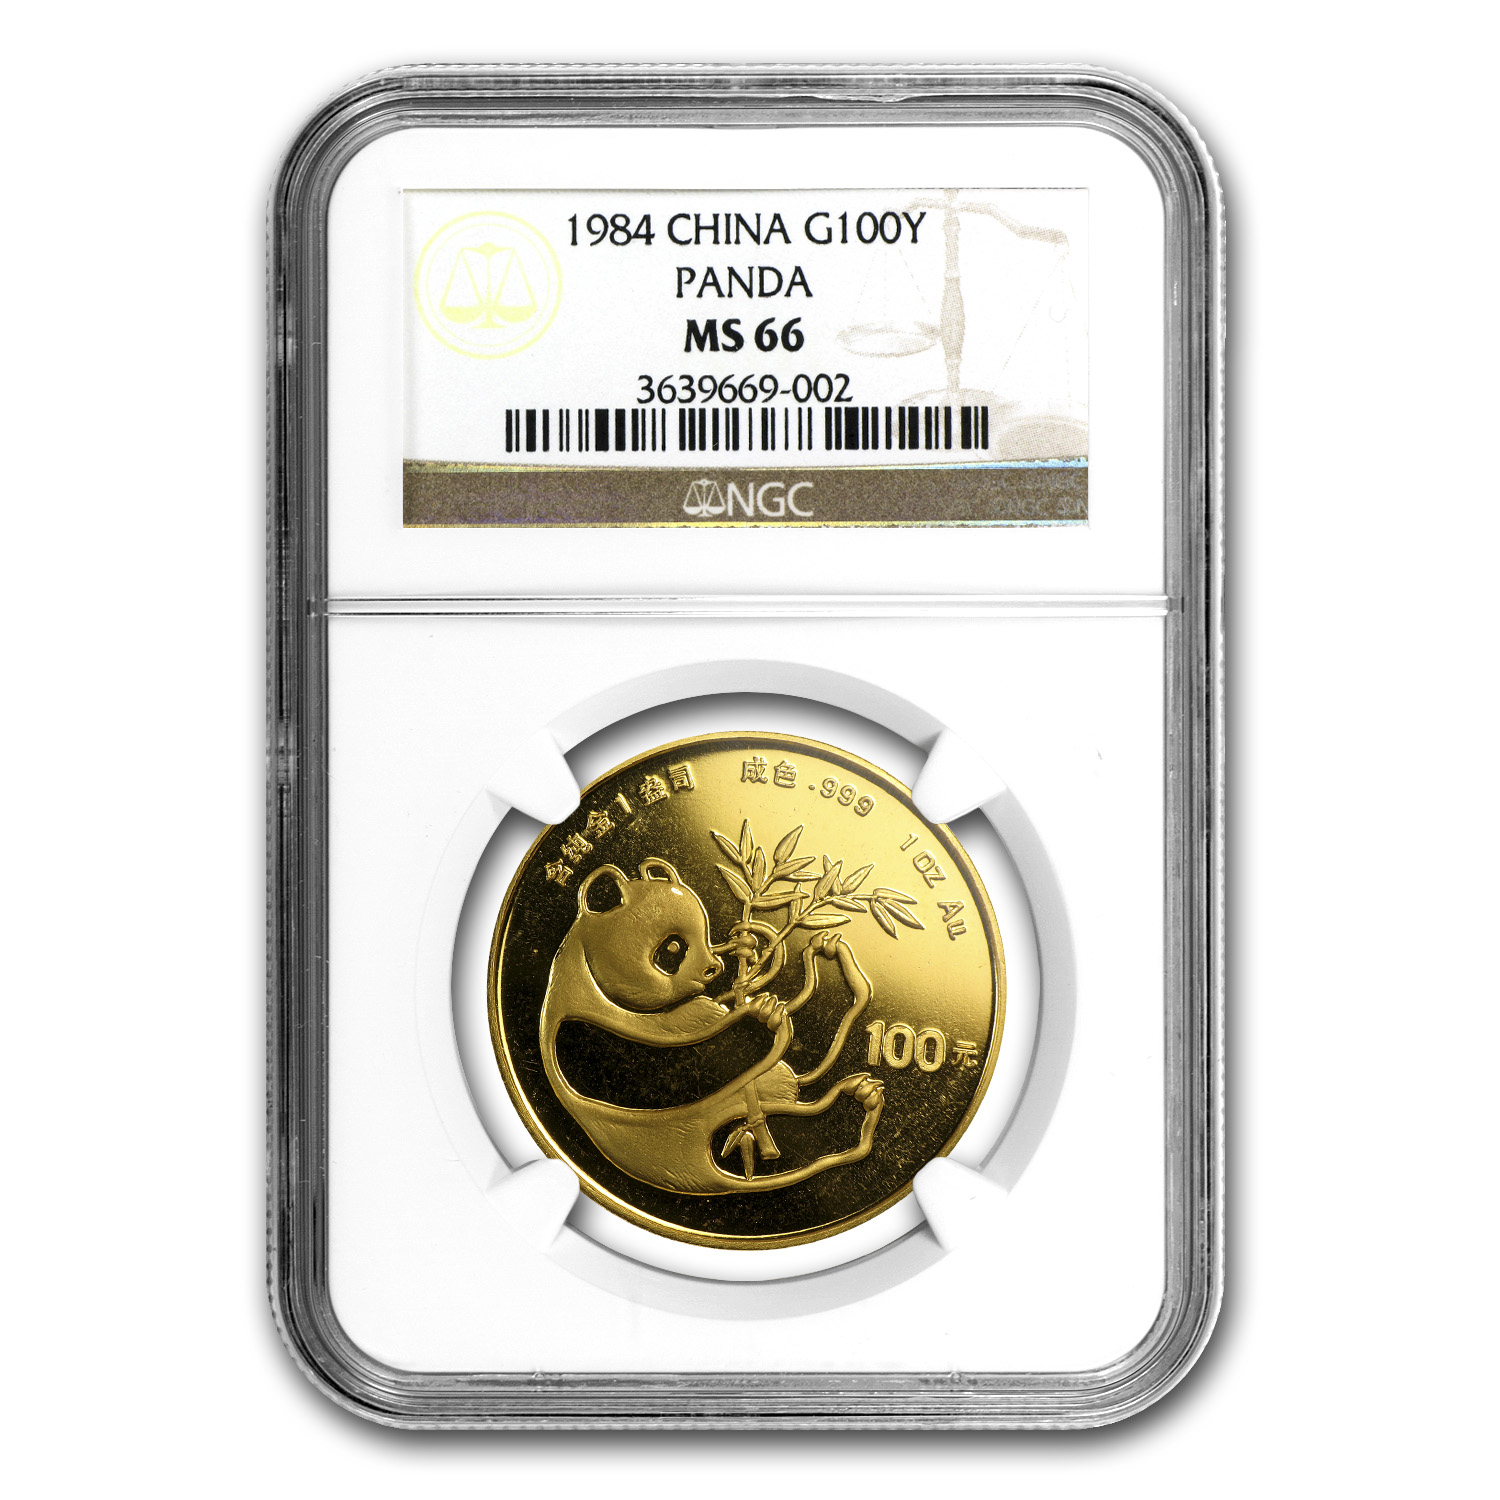 1984 1 oz Gold Chinese Panda MS-66 NGC